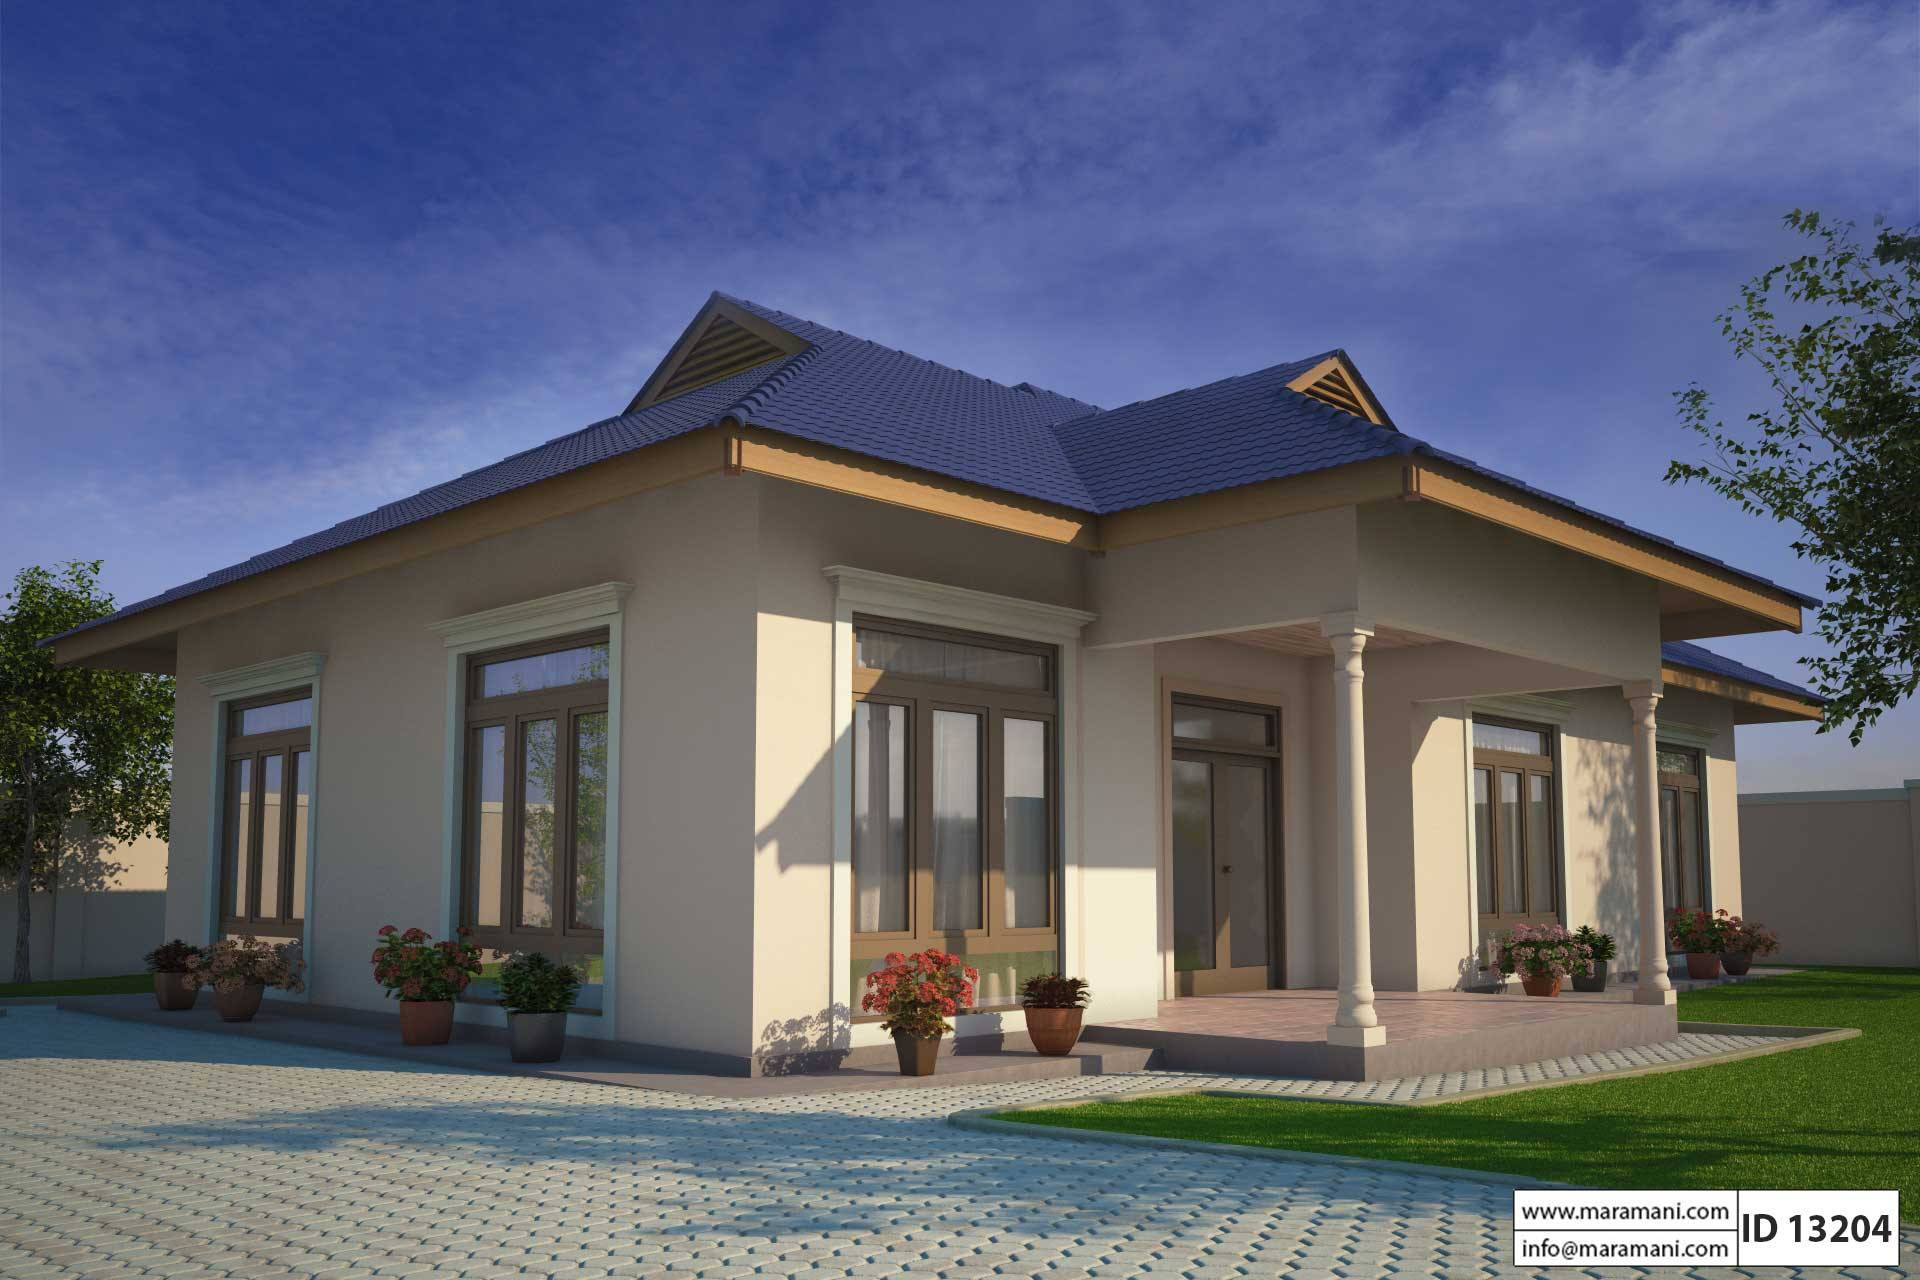 3 Bedroom House Plans Designs for Africa Maramanicom